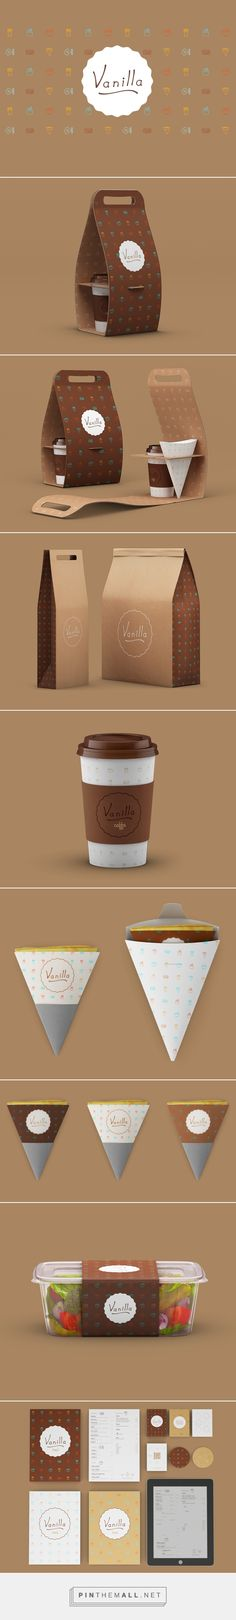 Vanilla identity packaging branding by Mario Dragic curated by Packaging Diva PD.